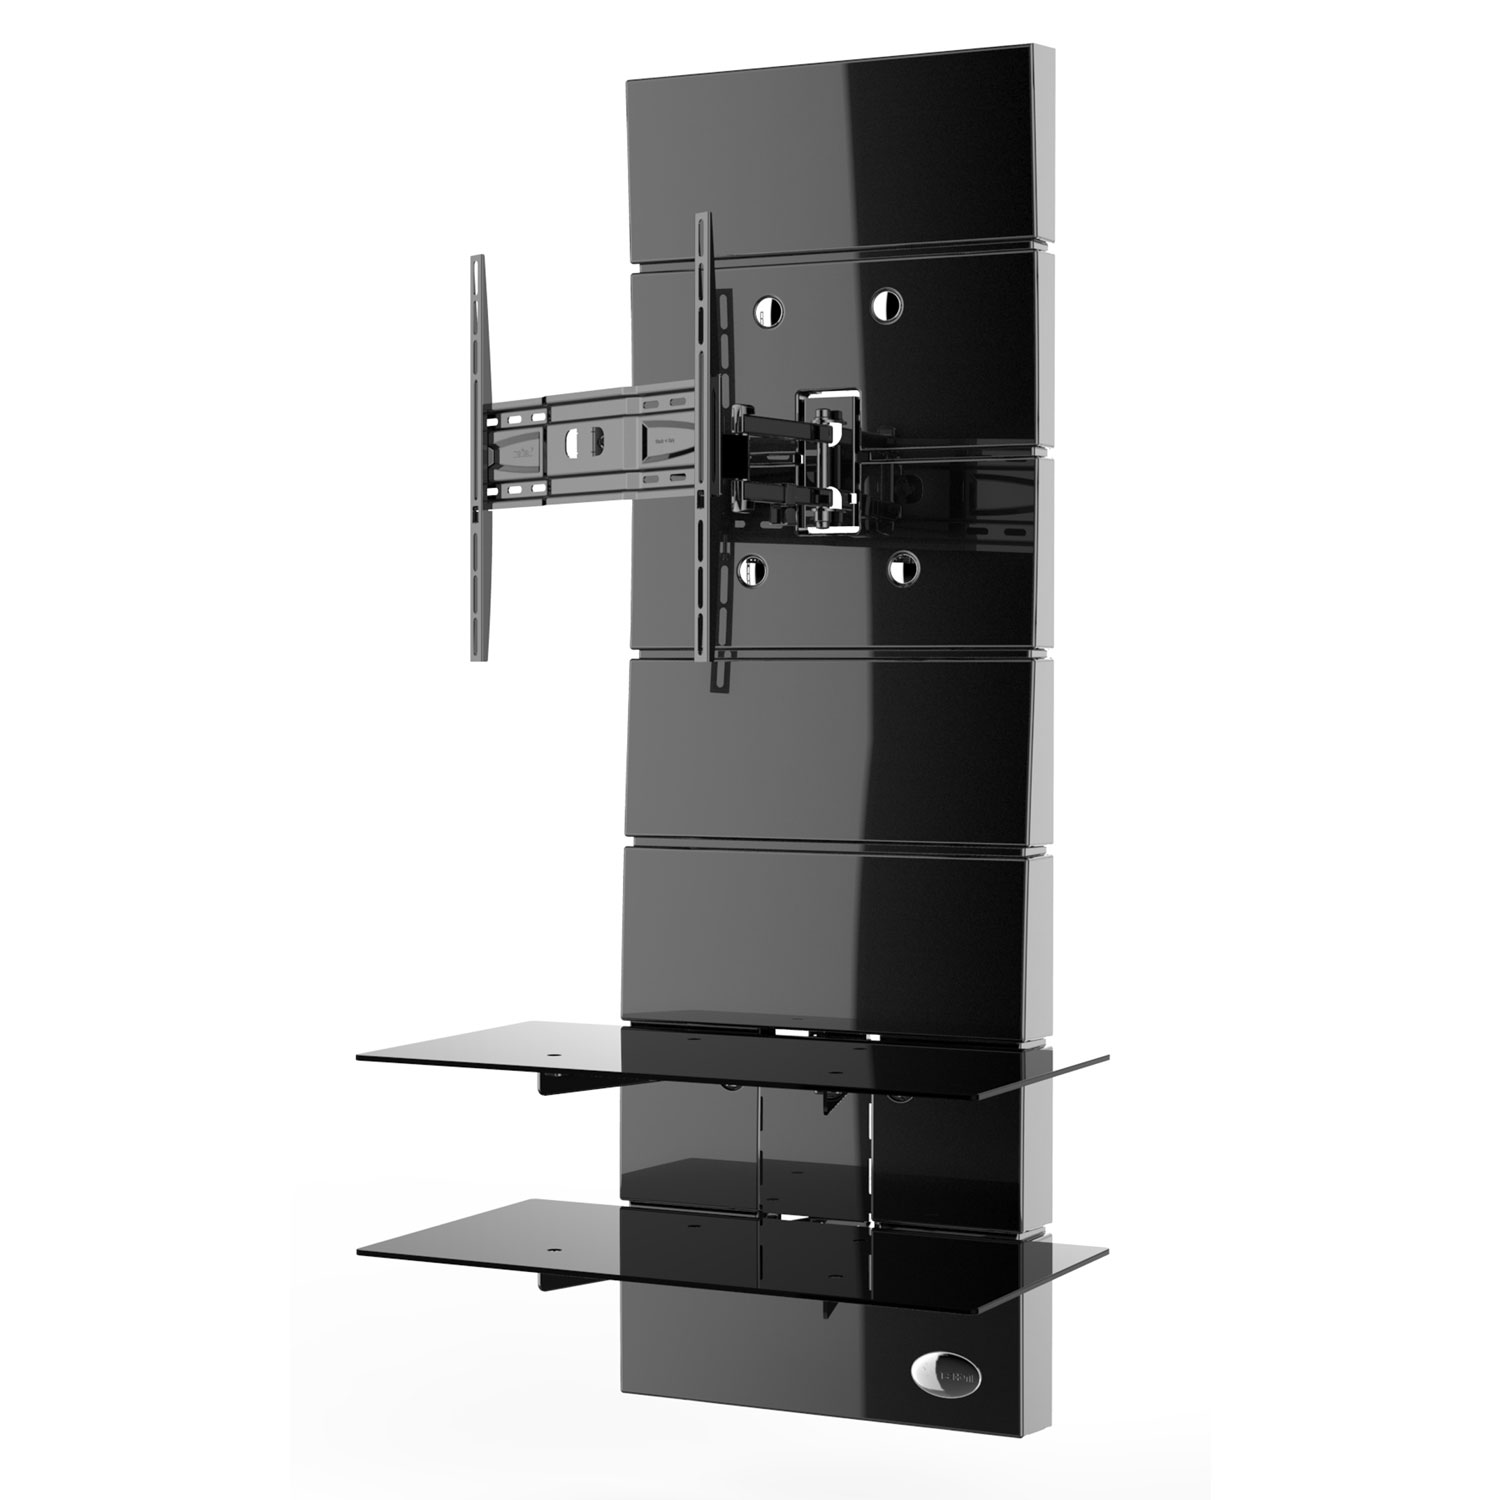 Meuble Tv Accroche Ecran - Meliconi Ghost Design 3000 Rotation Noir Meuble Tv Meliconi Sur [mjhdah]http://media.ldlc.com/ld/products/00/01/04/22/LD0001042248_2.jpg